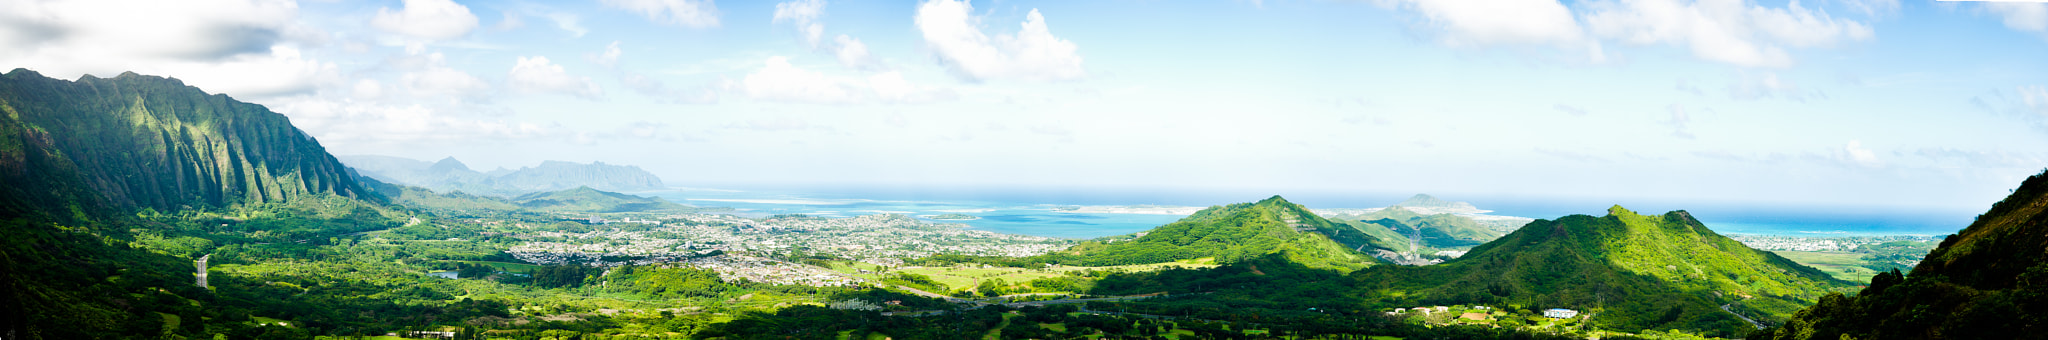 Photograph Hawaii - Oahu by Teymur Madjderey on 500px